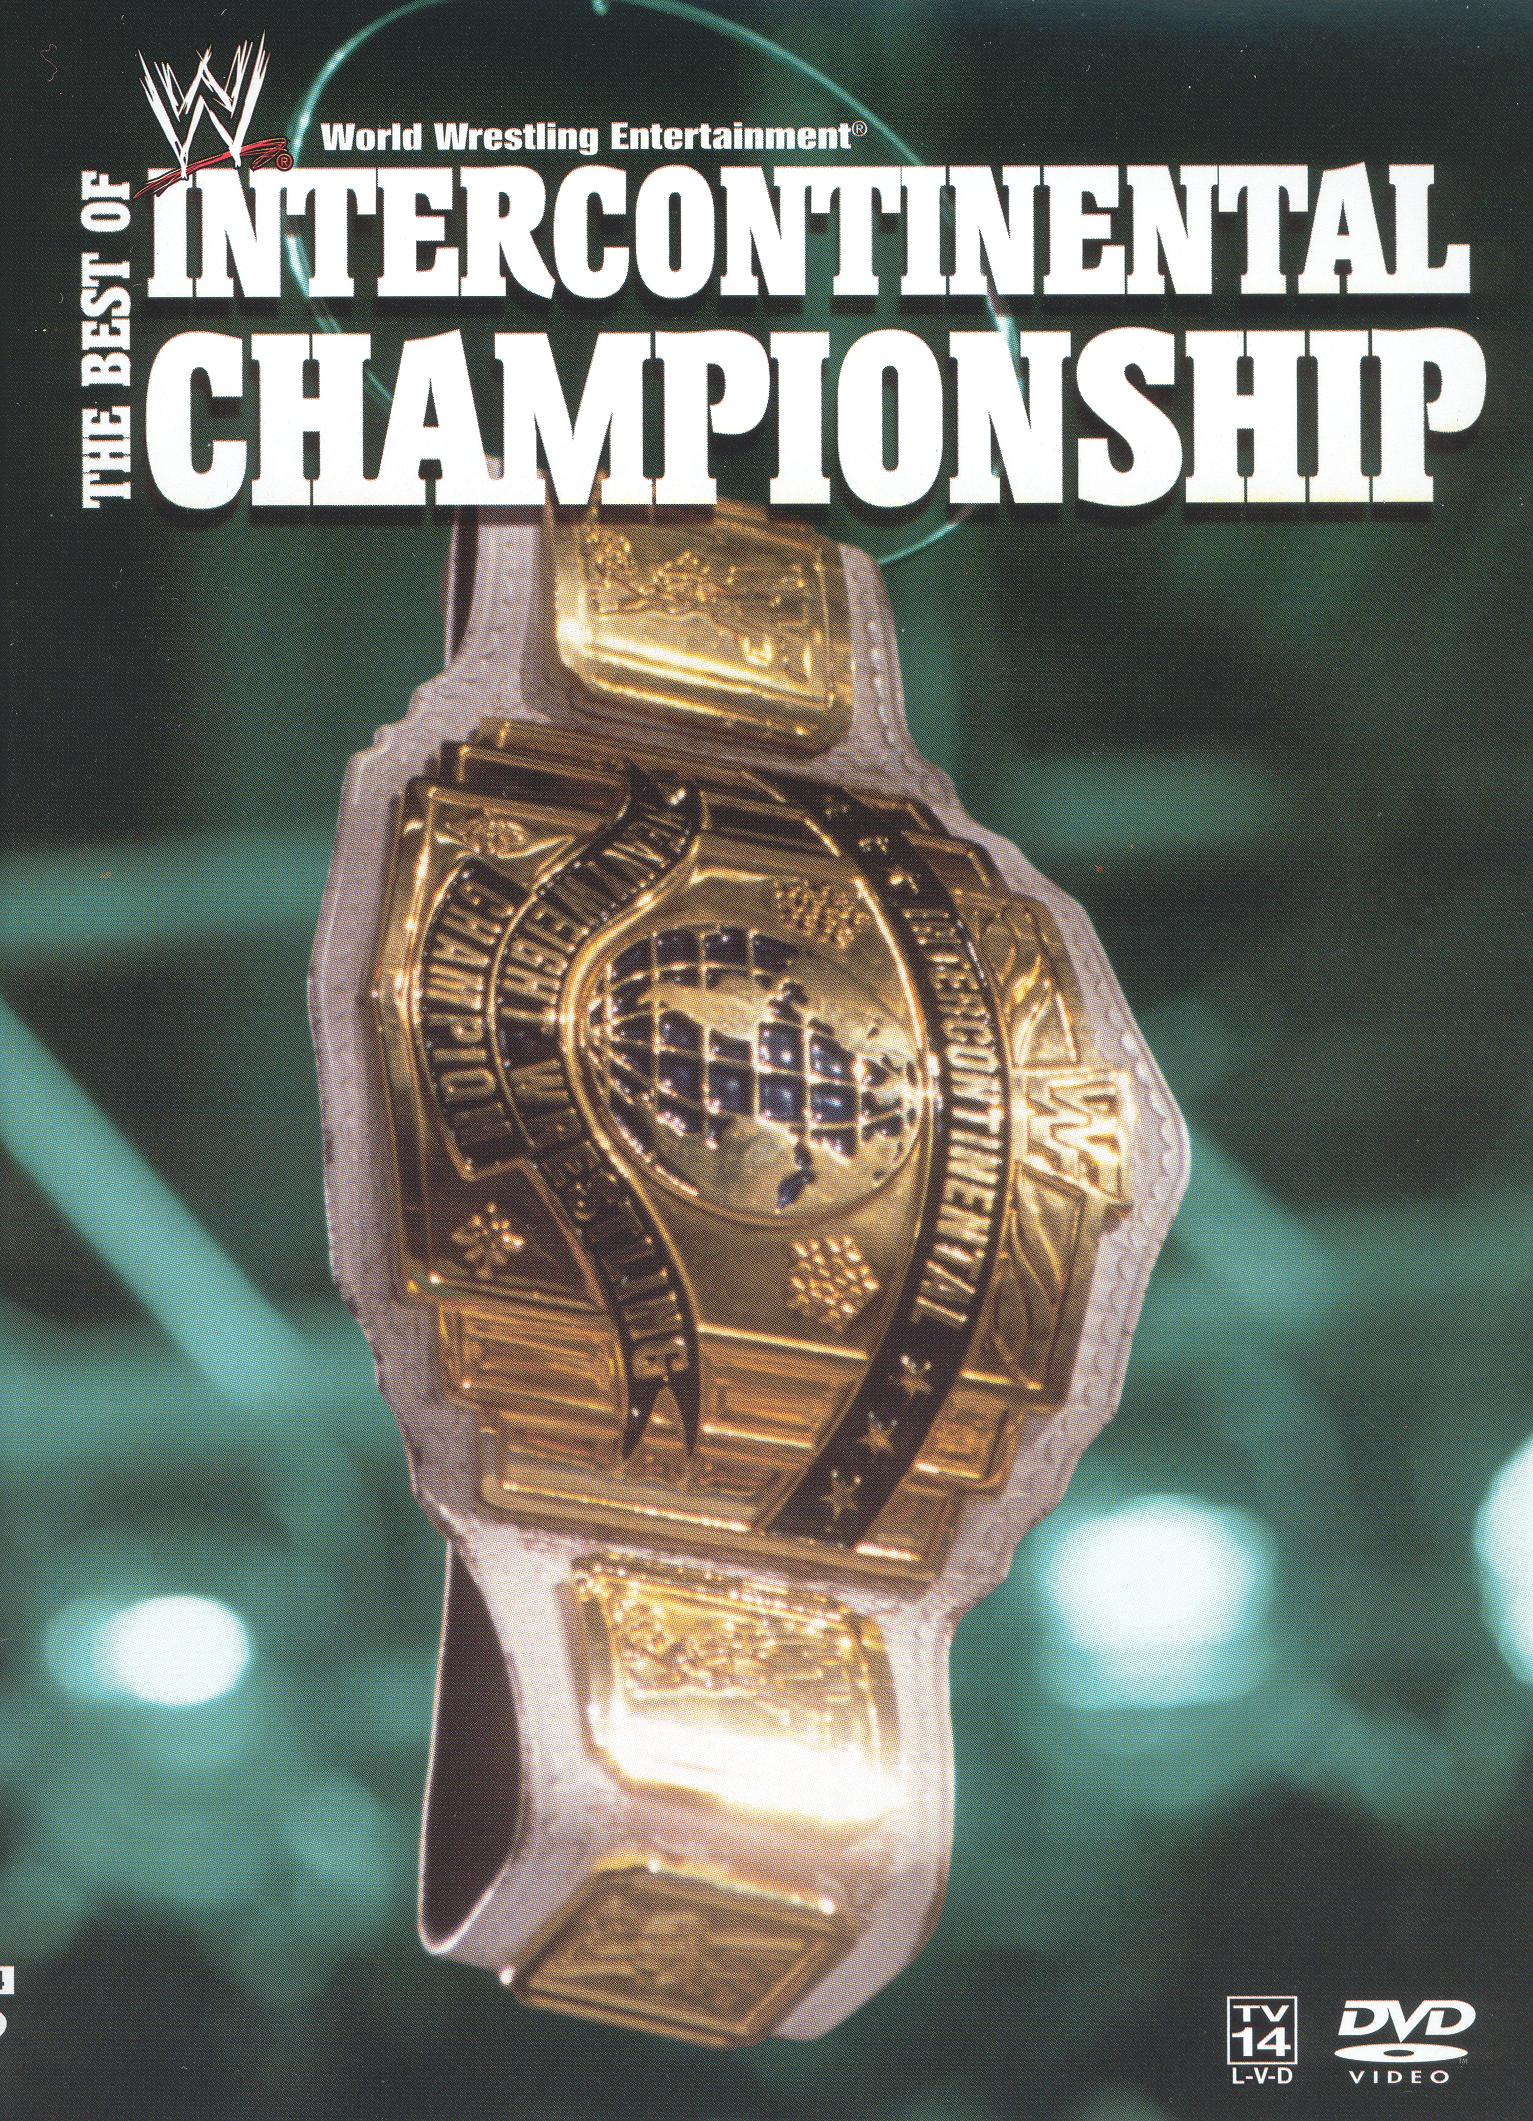 WWE: The Best of Intercontinental Championship